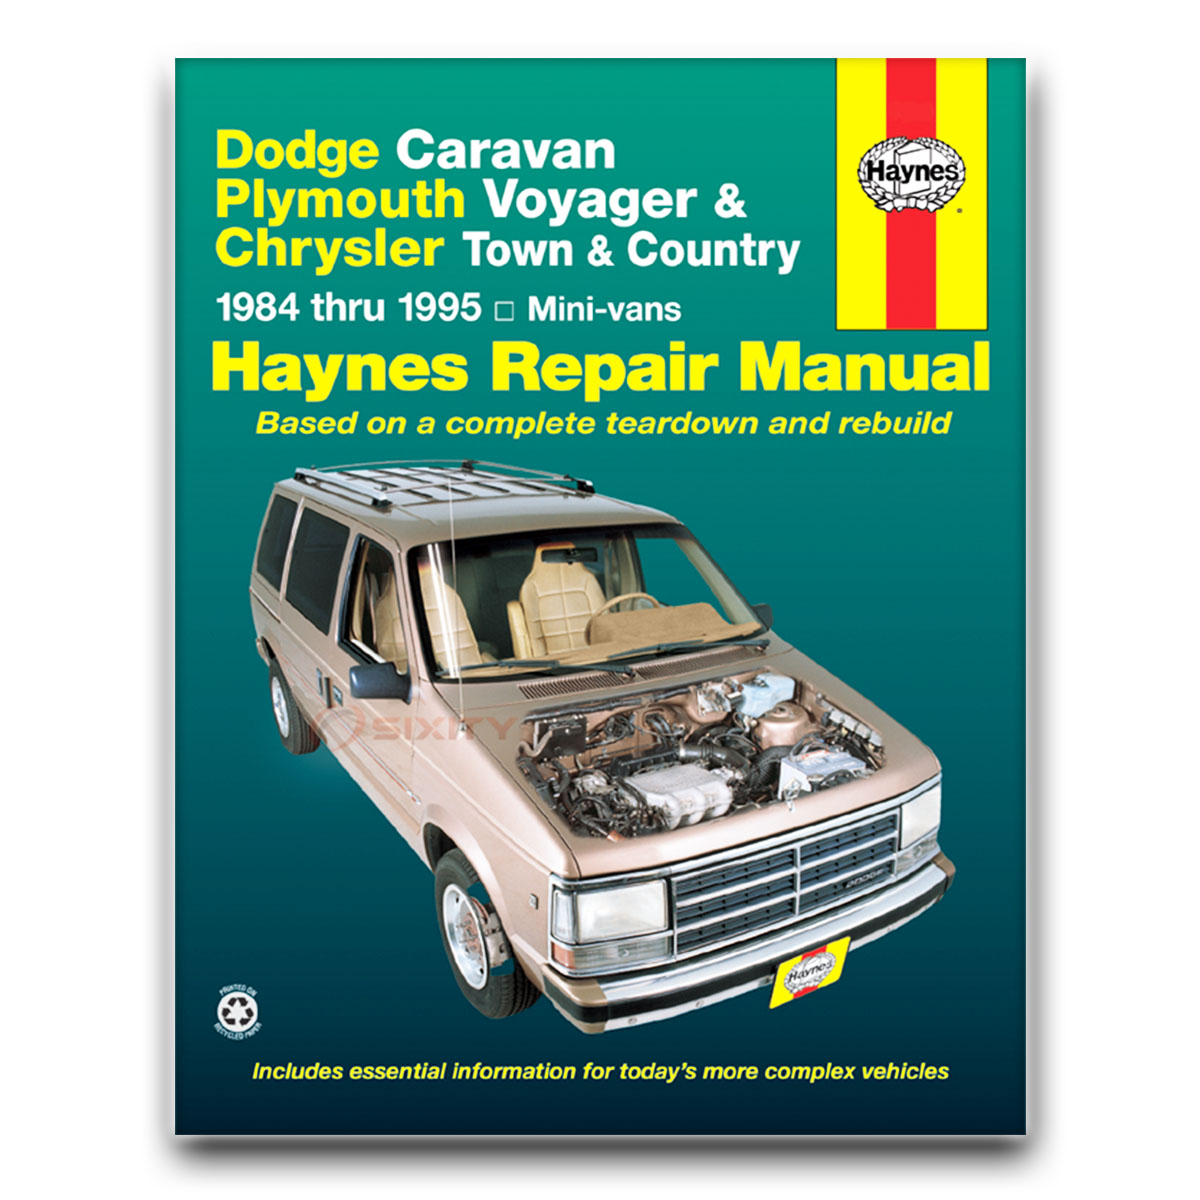 dodge grand caravan haynes repair manual base es se le shop service rh ebay com 2010 dodge grand caravan repair manual pdf 2010 dodge grand caravan repair manual pdf